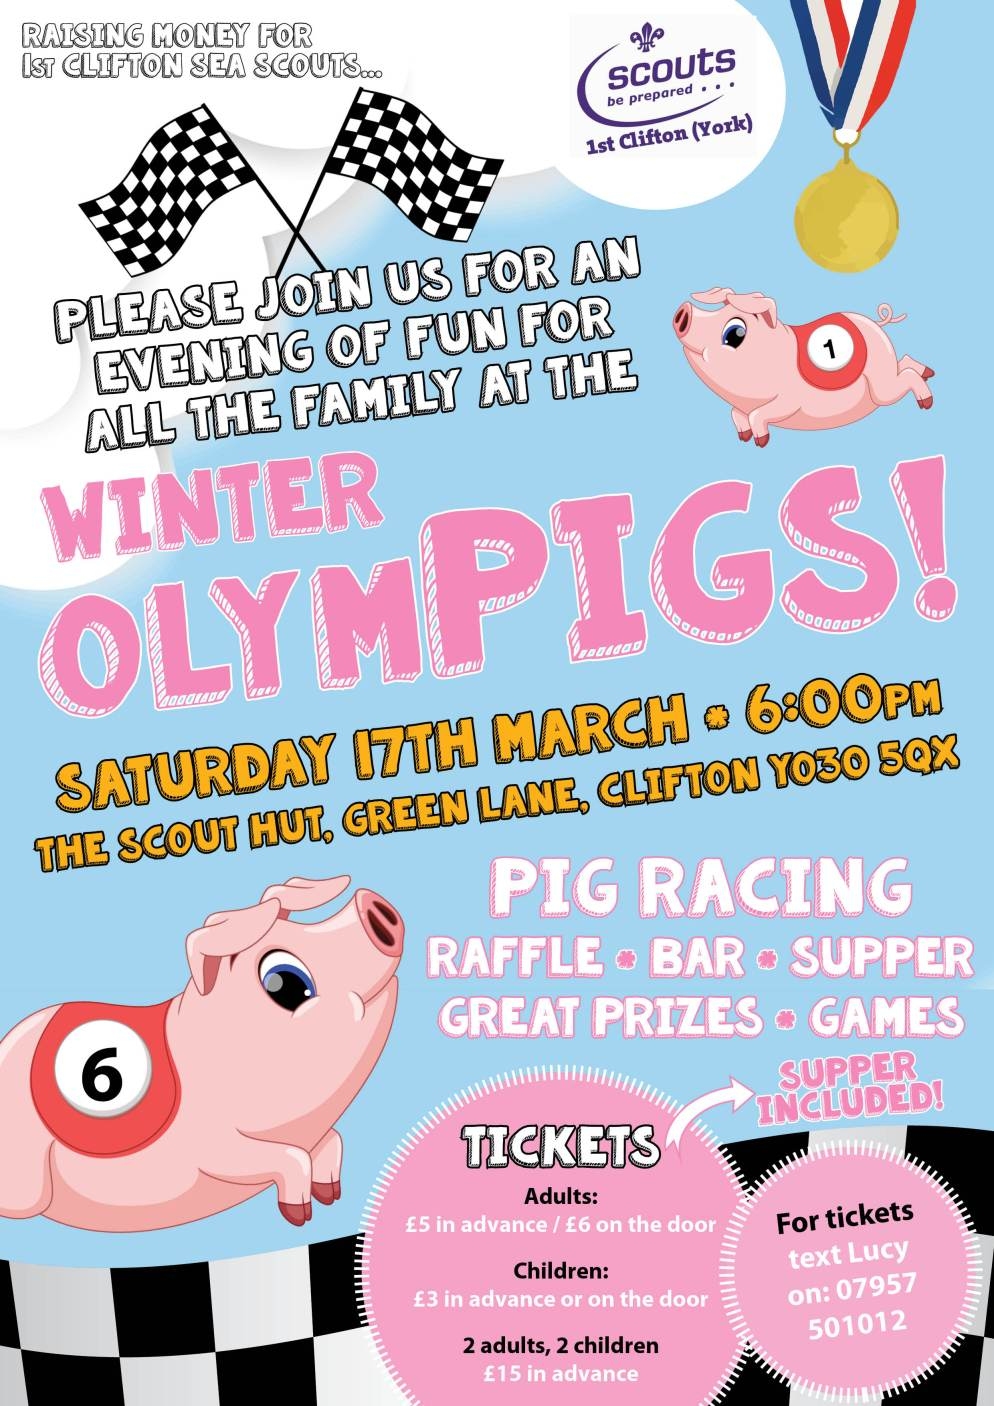 Pig Racing leaflet